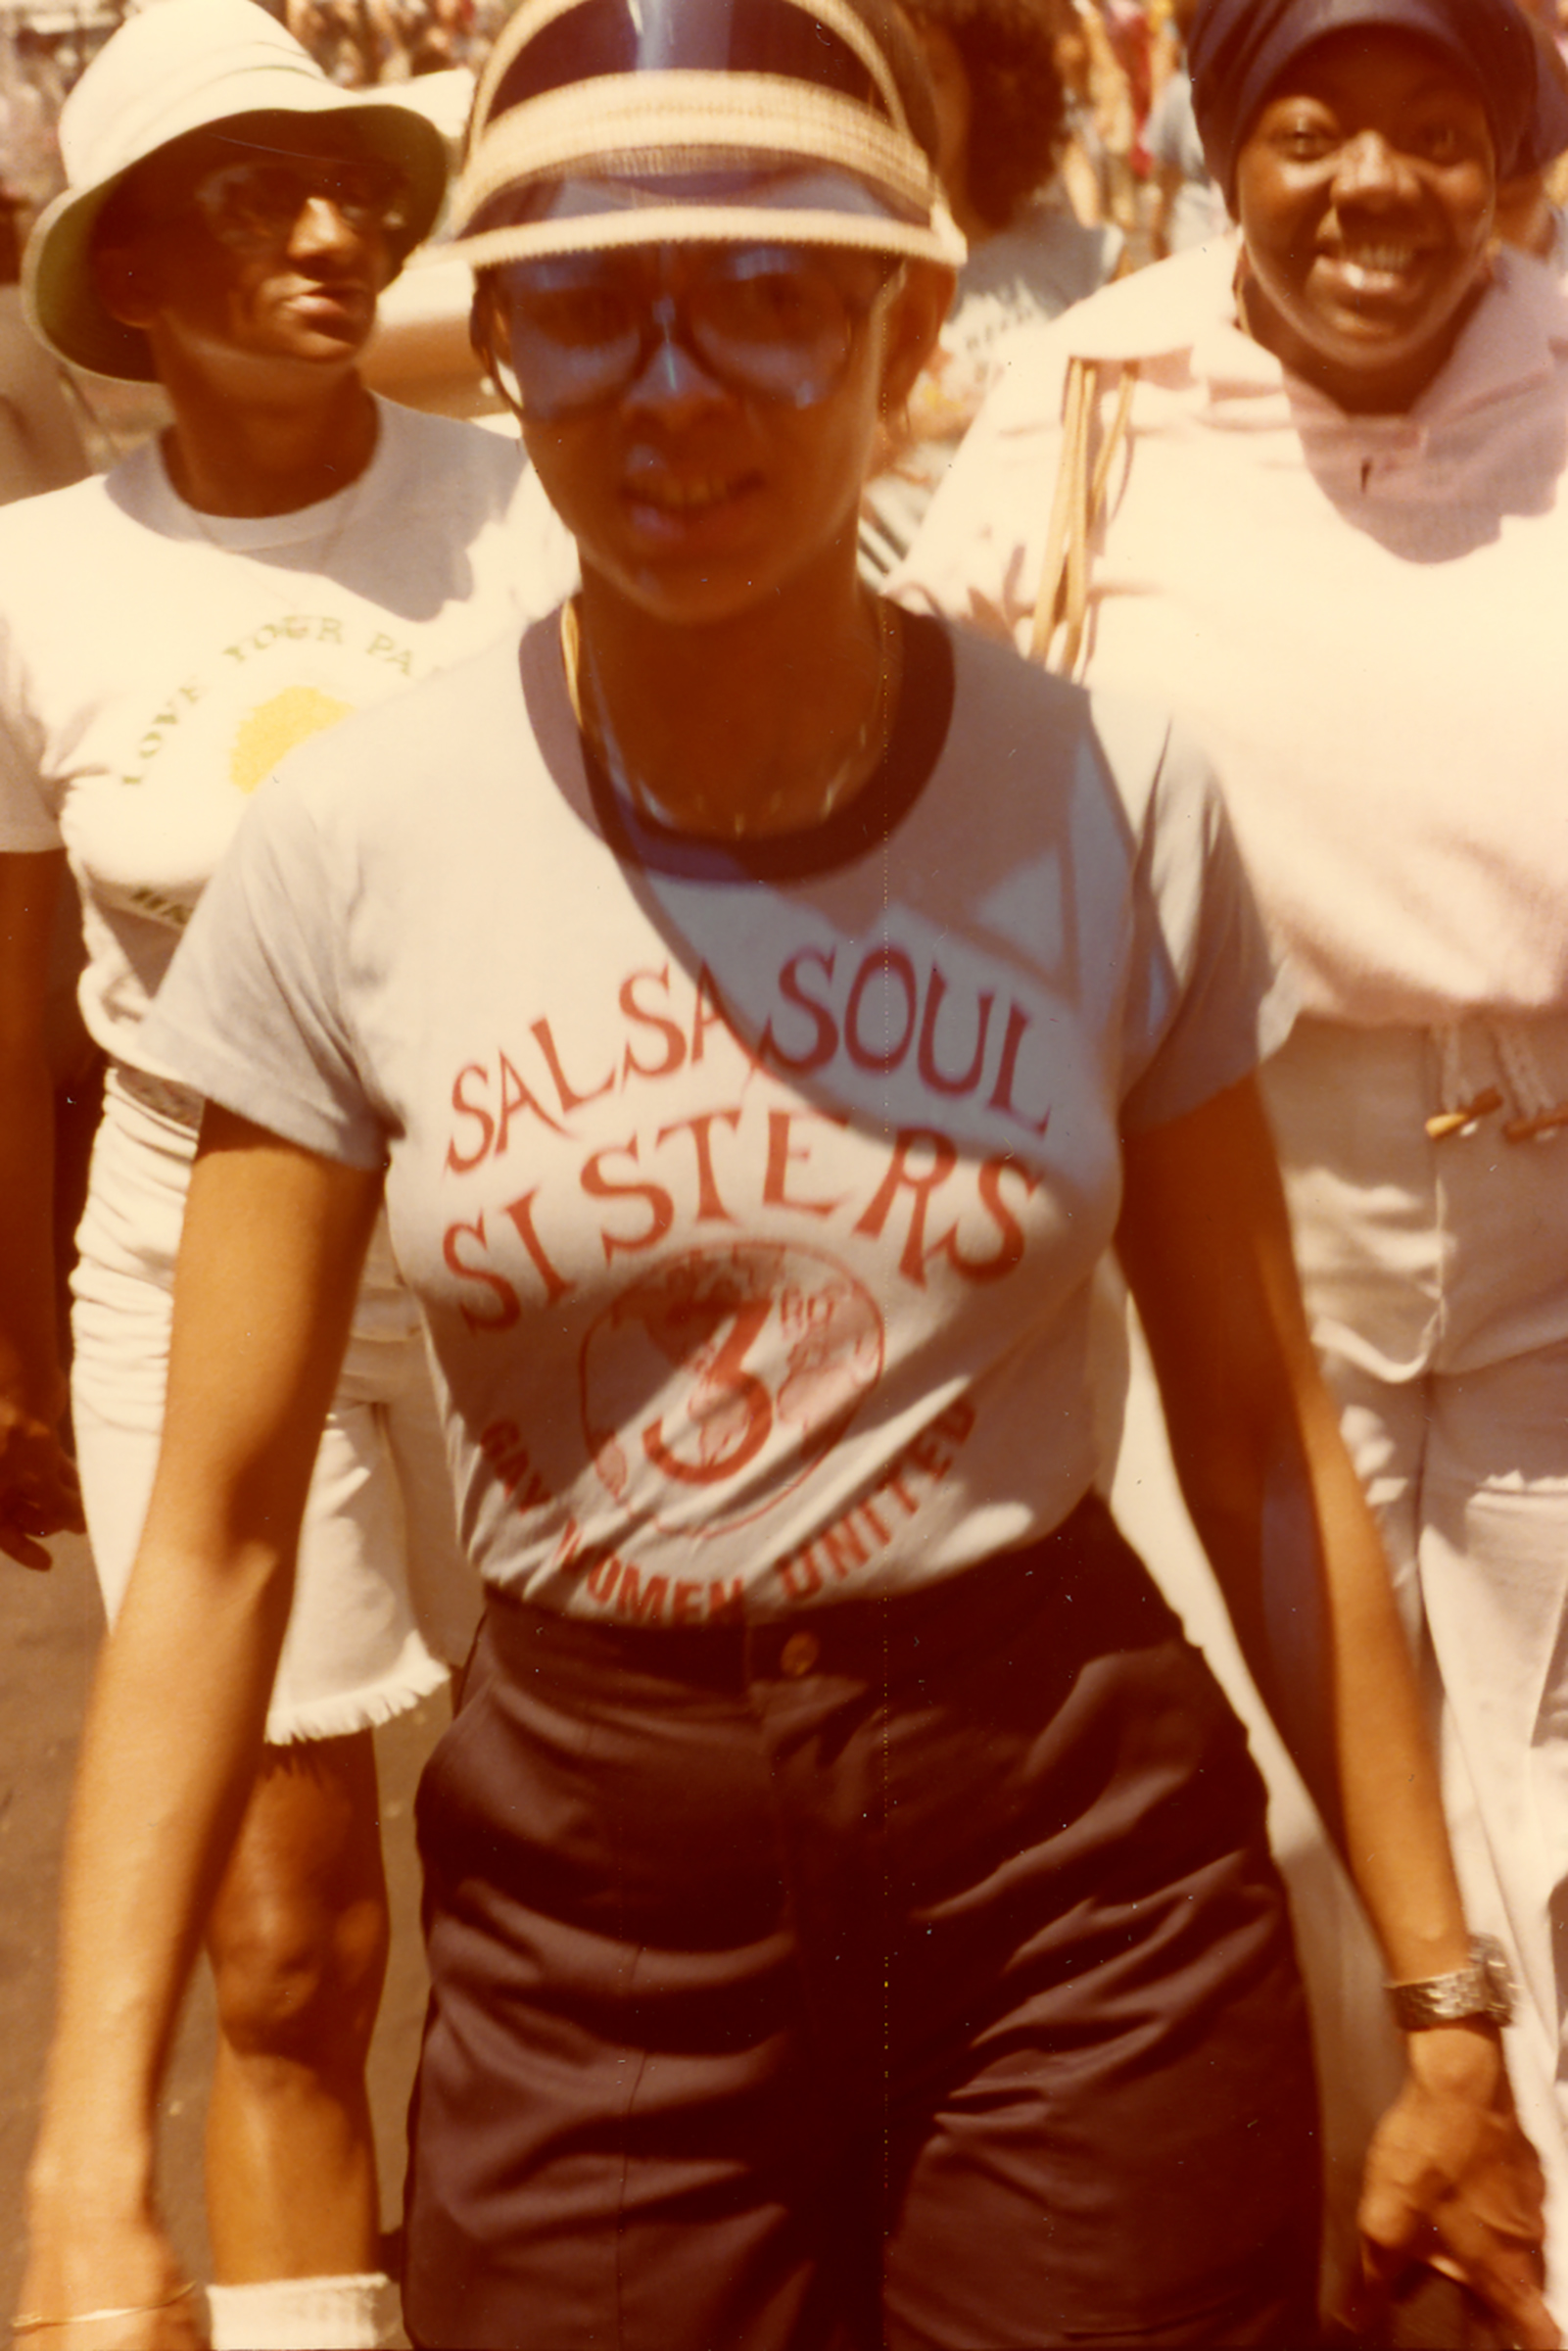 A woman part of the Salsa Soul Sisters at Pride Parade in 1977